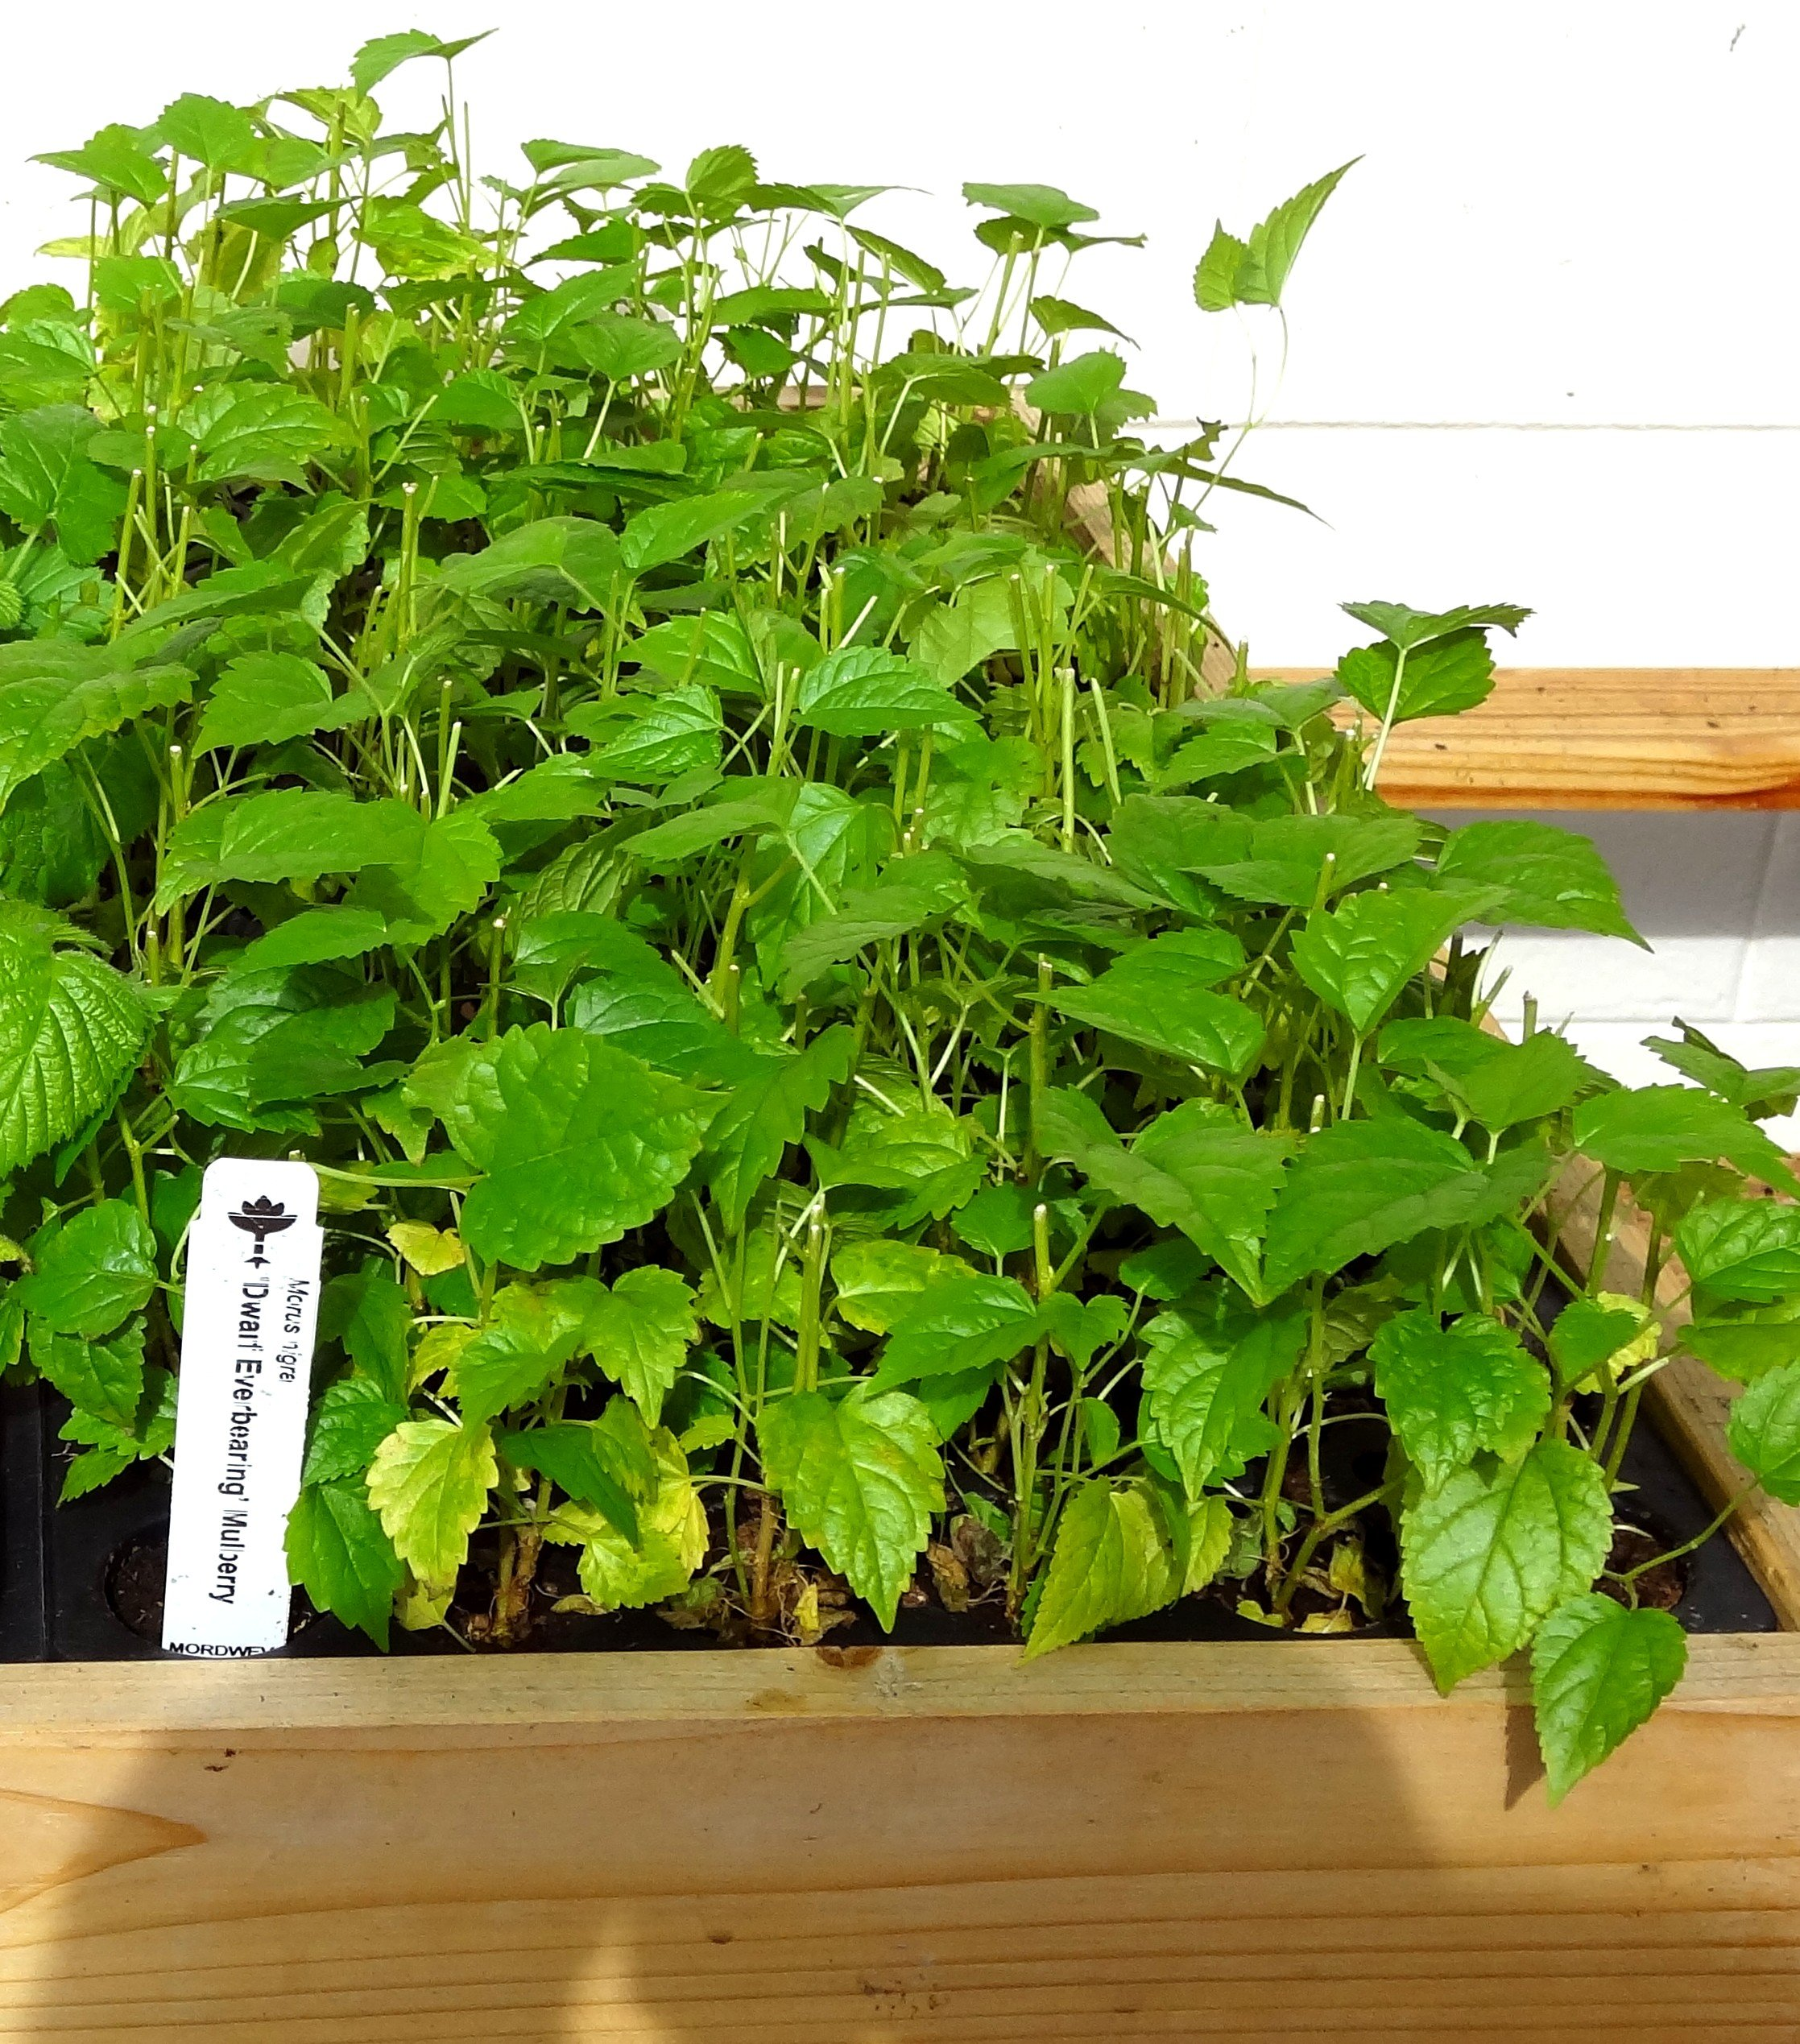 Mulberry ''Dwarf Everbearing'' Price Includes Four (4) Plants by Hello Organics